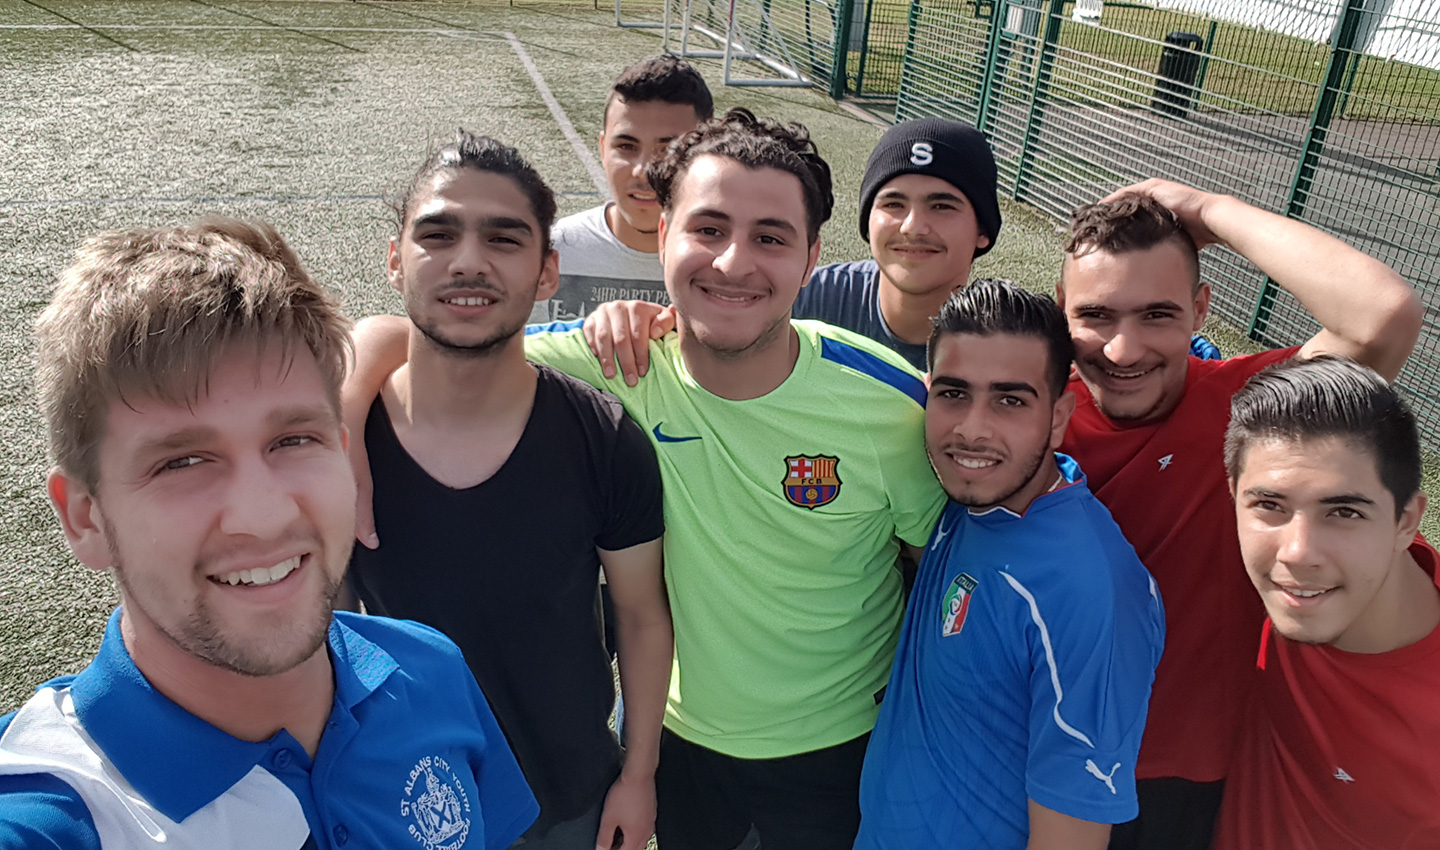 St Albans City Youth FC played a friendly match against a group of young refugees